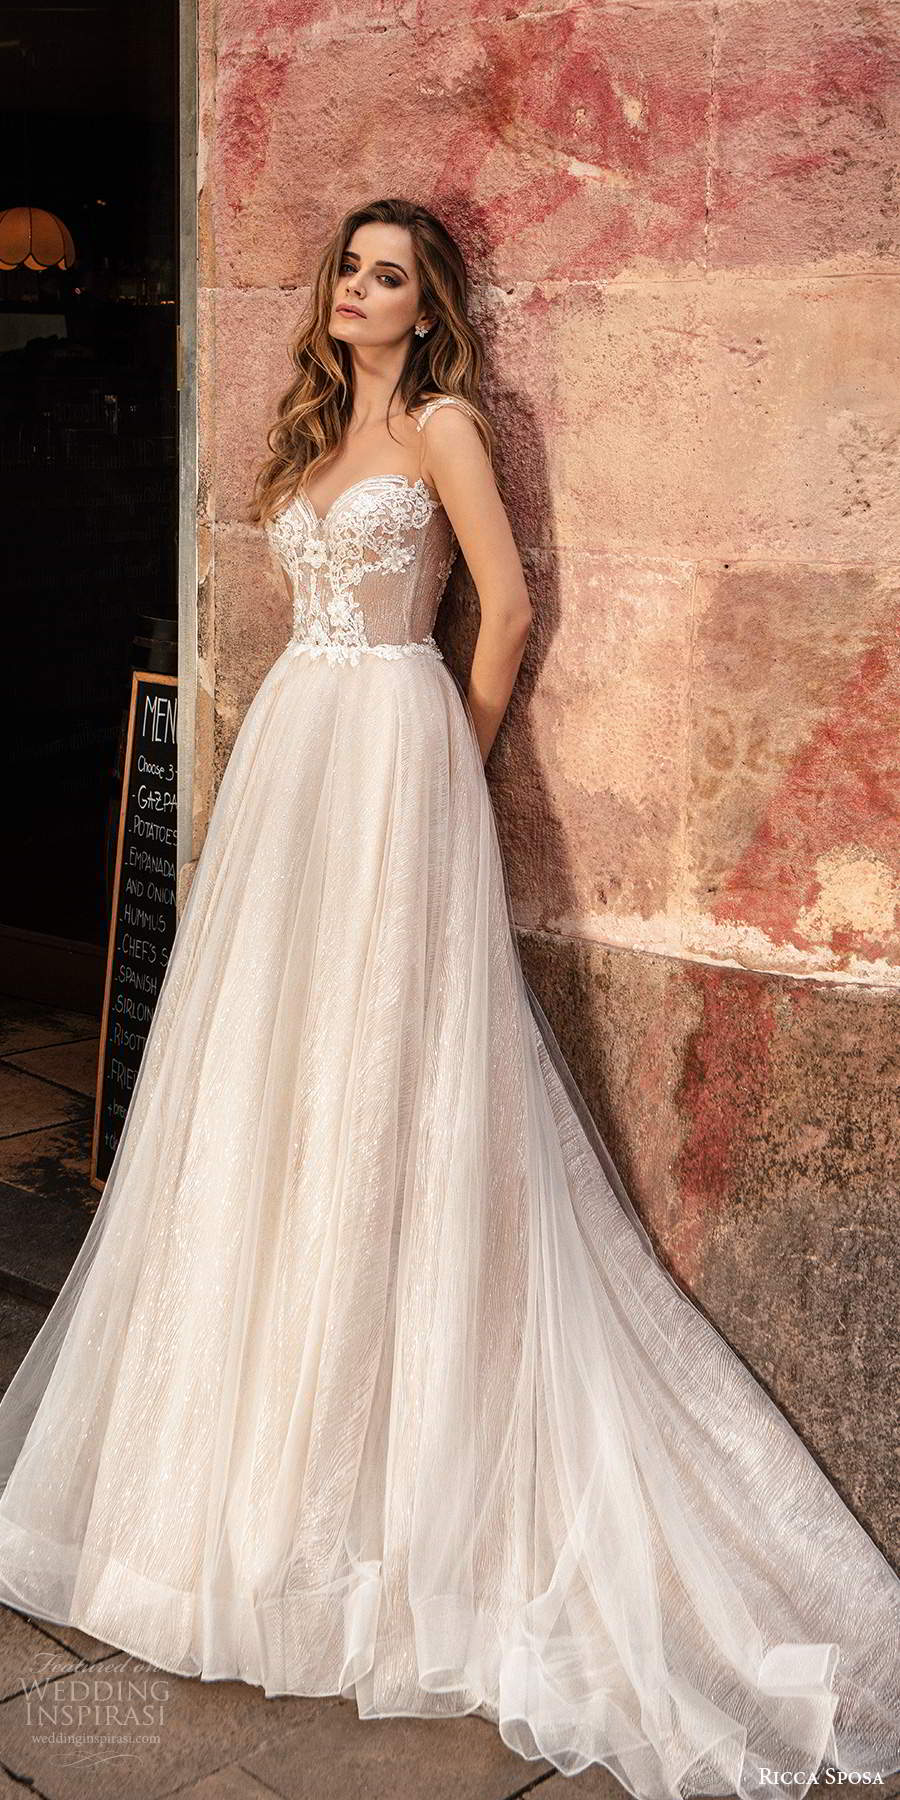 ricca sposa 2020 barcelona bridal sleeveless straps sweetheart neckline sheer heavily embellished bodice a line ball gown wedding dress chapel train (16) mv